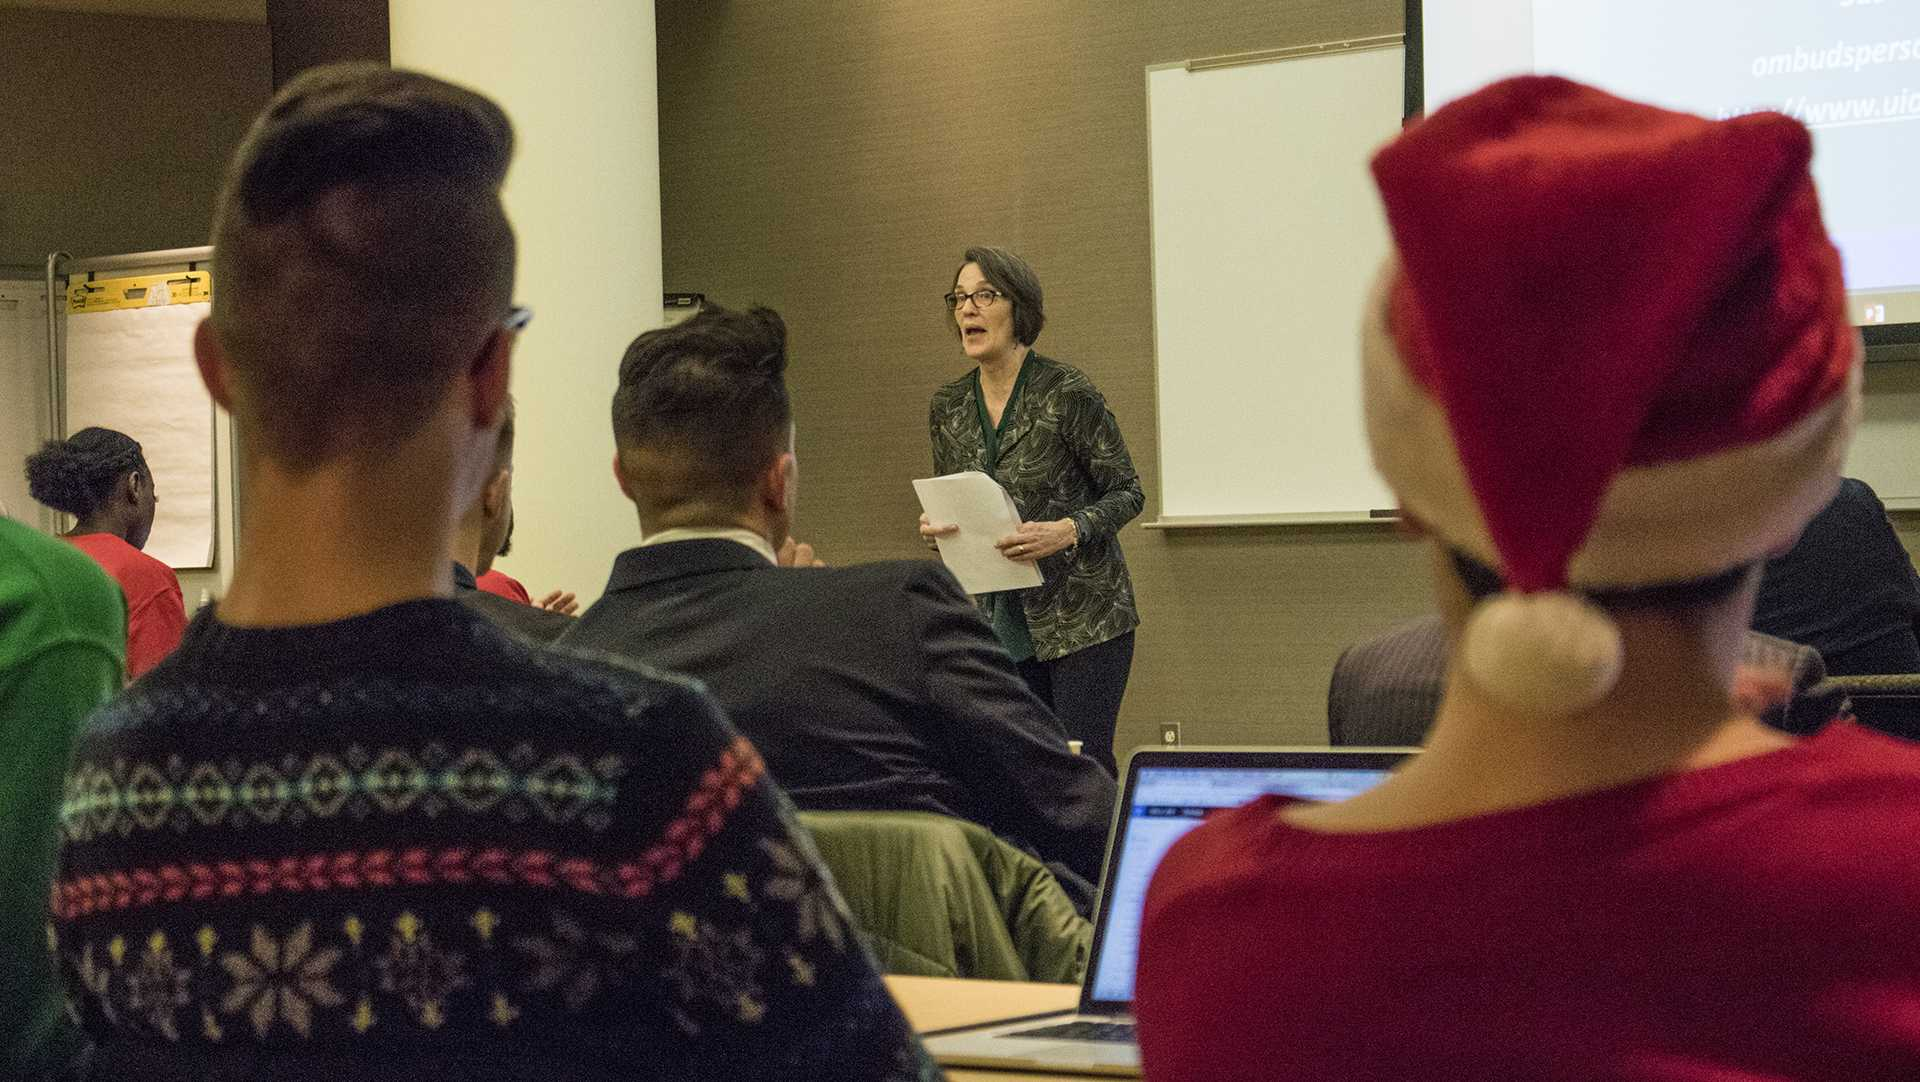 Senators hear a presentation at a UISG meeting on Tuesday, Dec. 5, 2017. UISG voted on adding independent senators to make elections more accessible. (Shivansh Ahuja/The Daily Iowan)